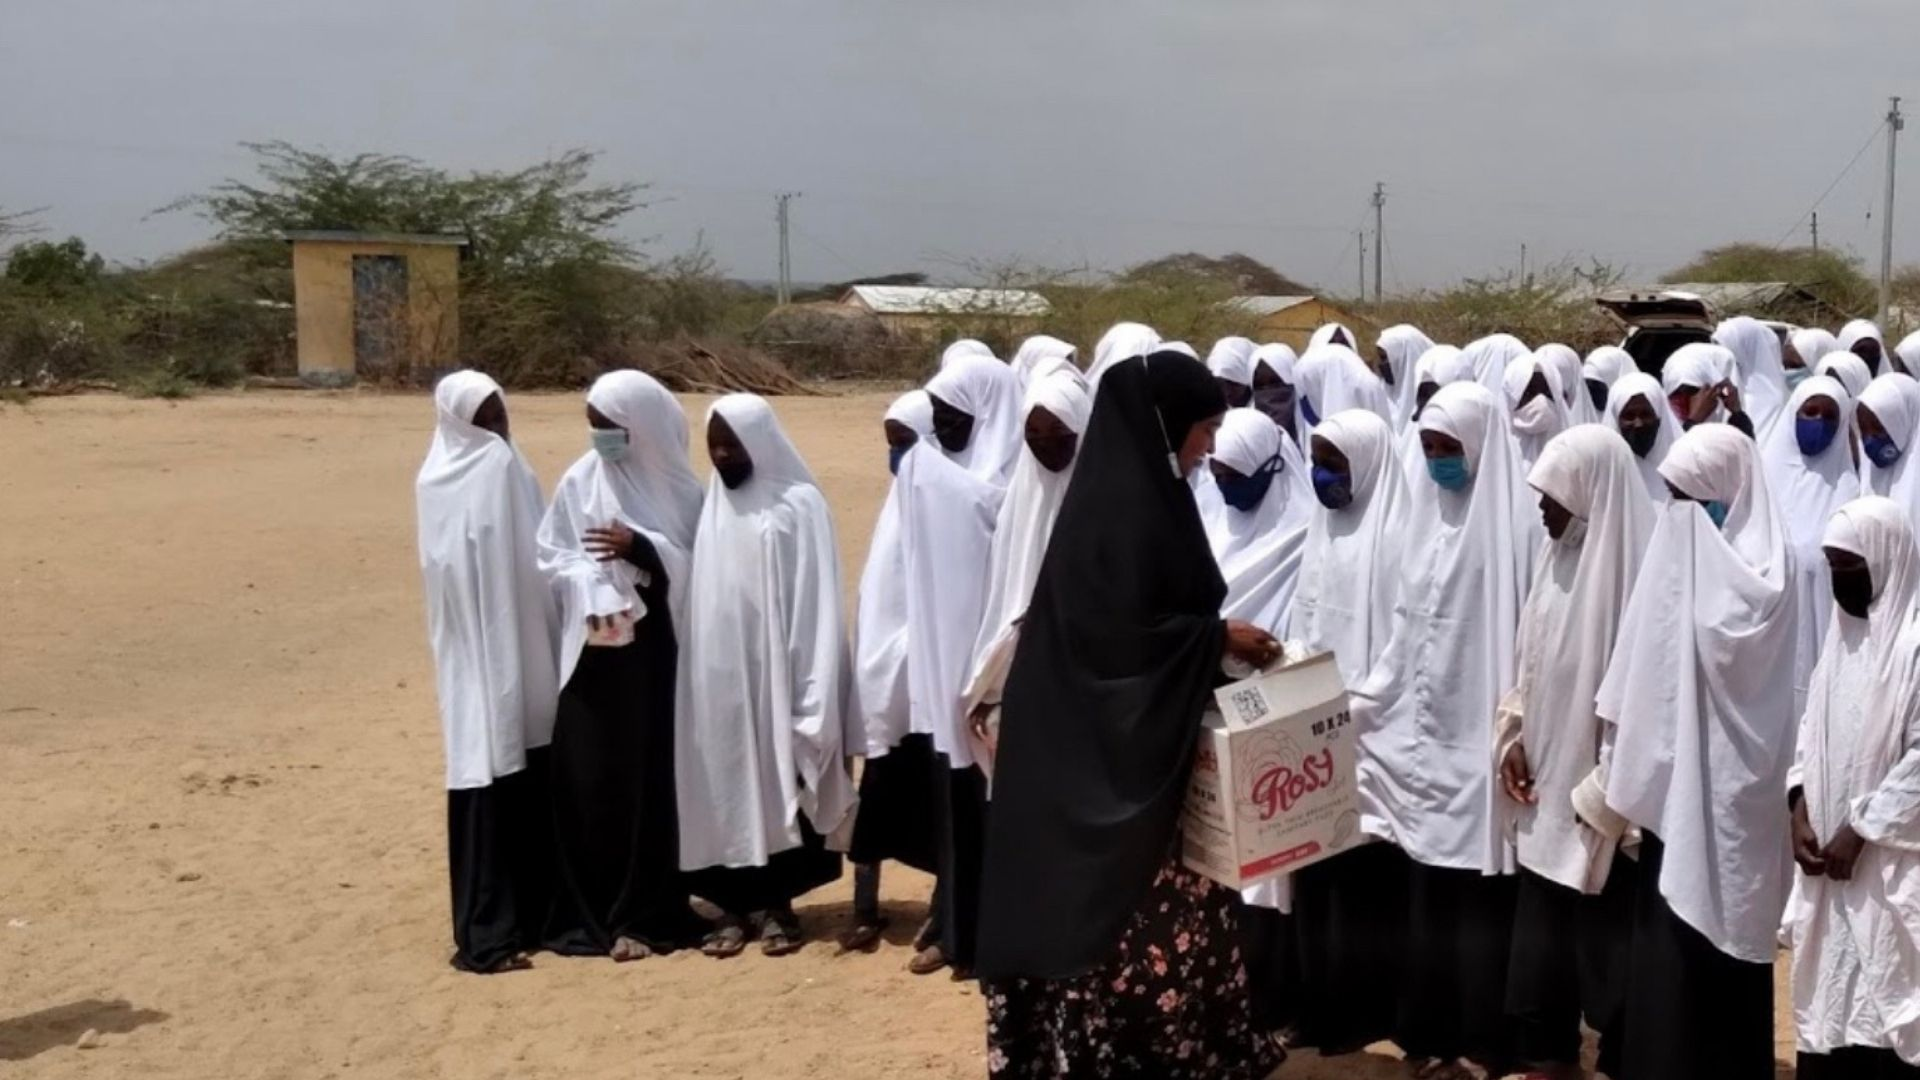 Media campaign to End FGM in Garissa county, Kenya